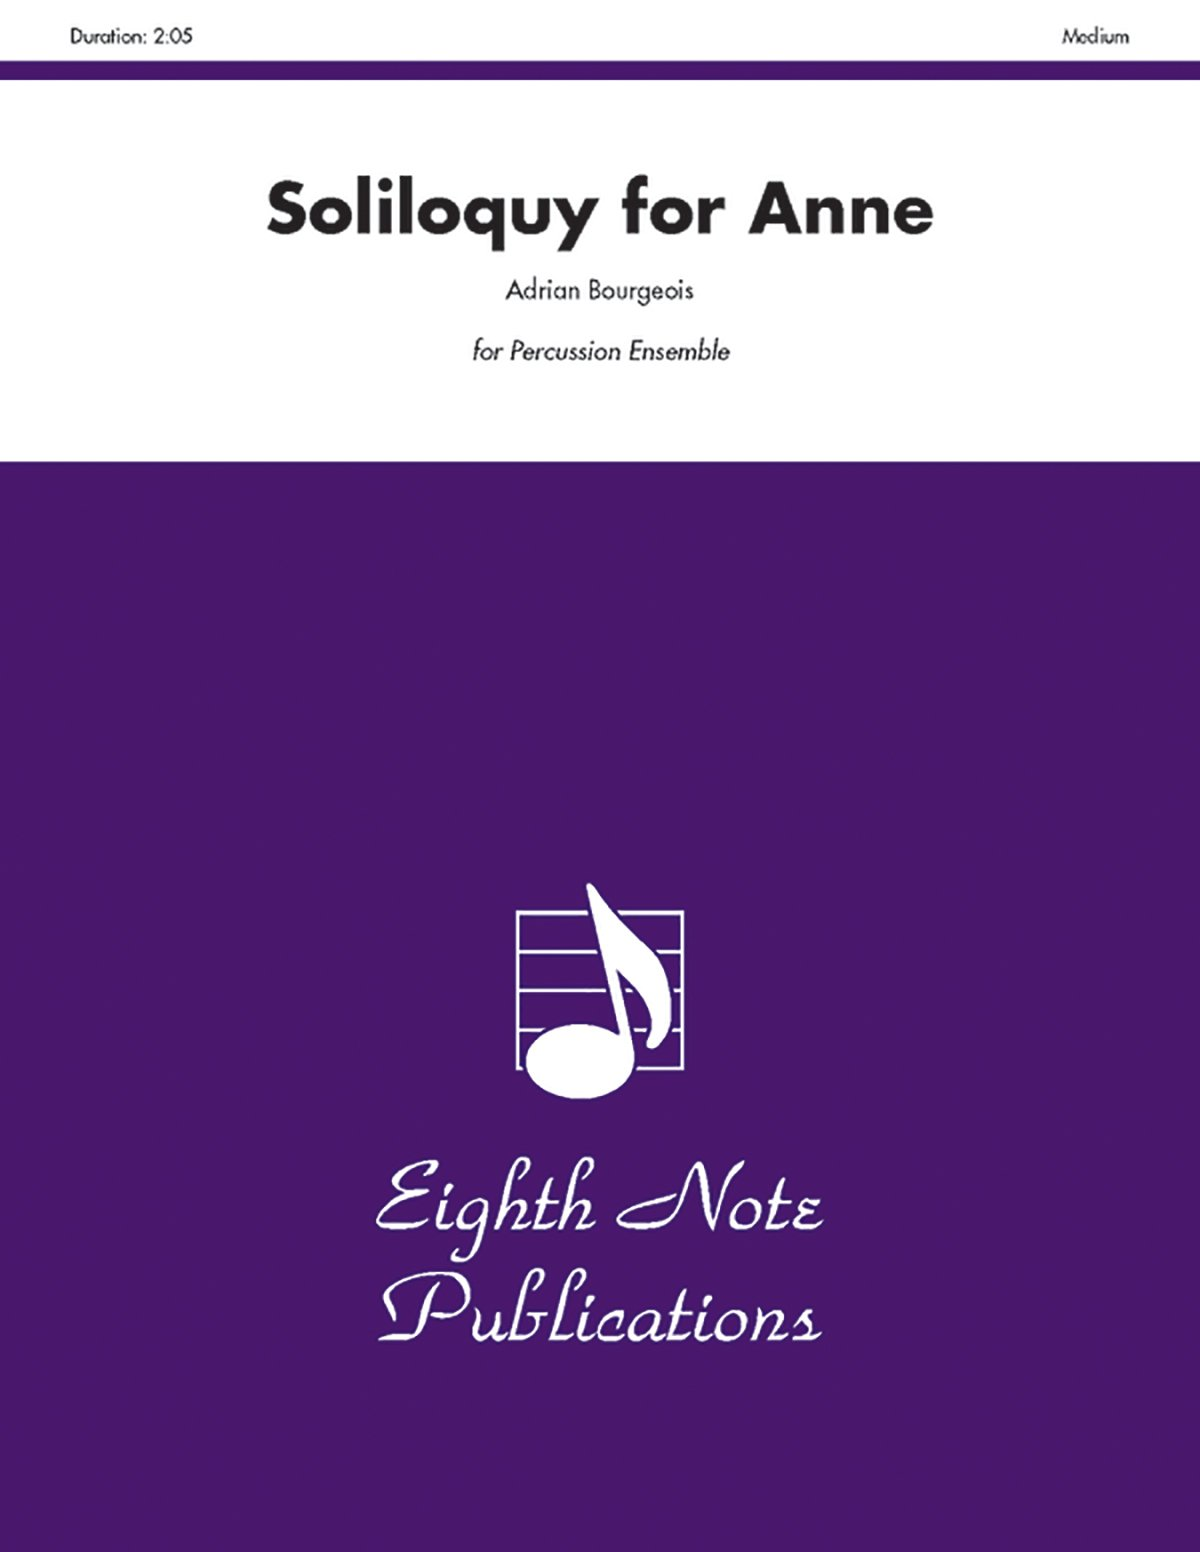 Soliloquy for Anne: For 6 Players, Score & Parts (Eighth Note Publications) pdf epub